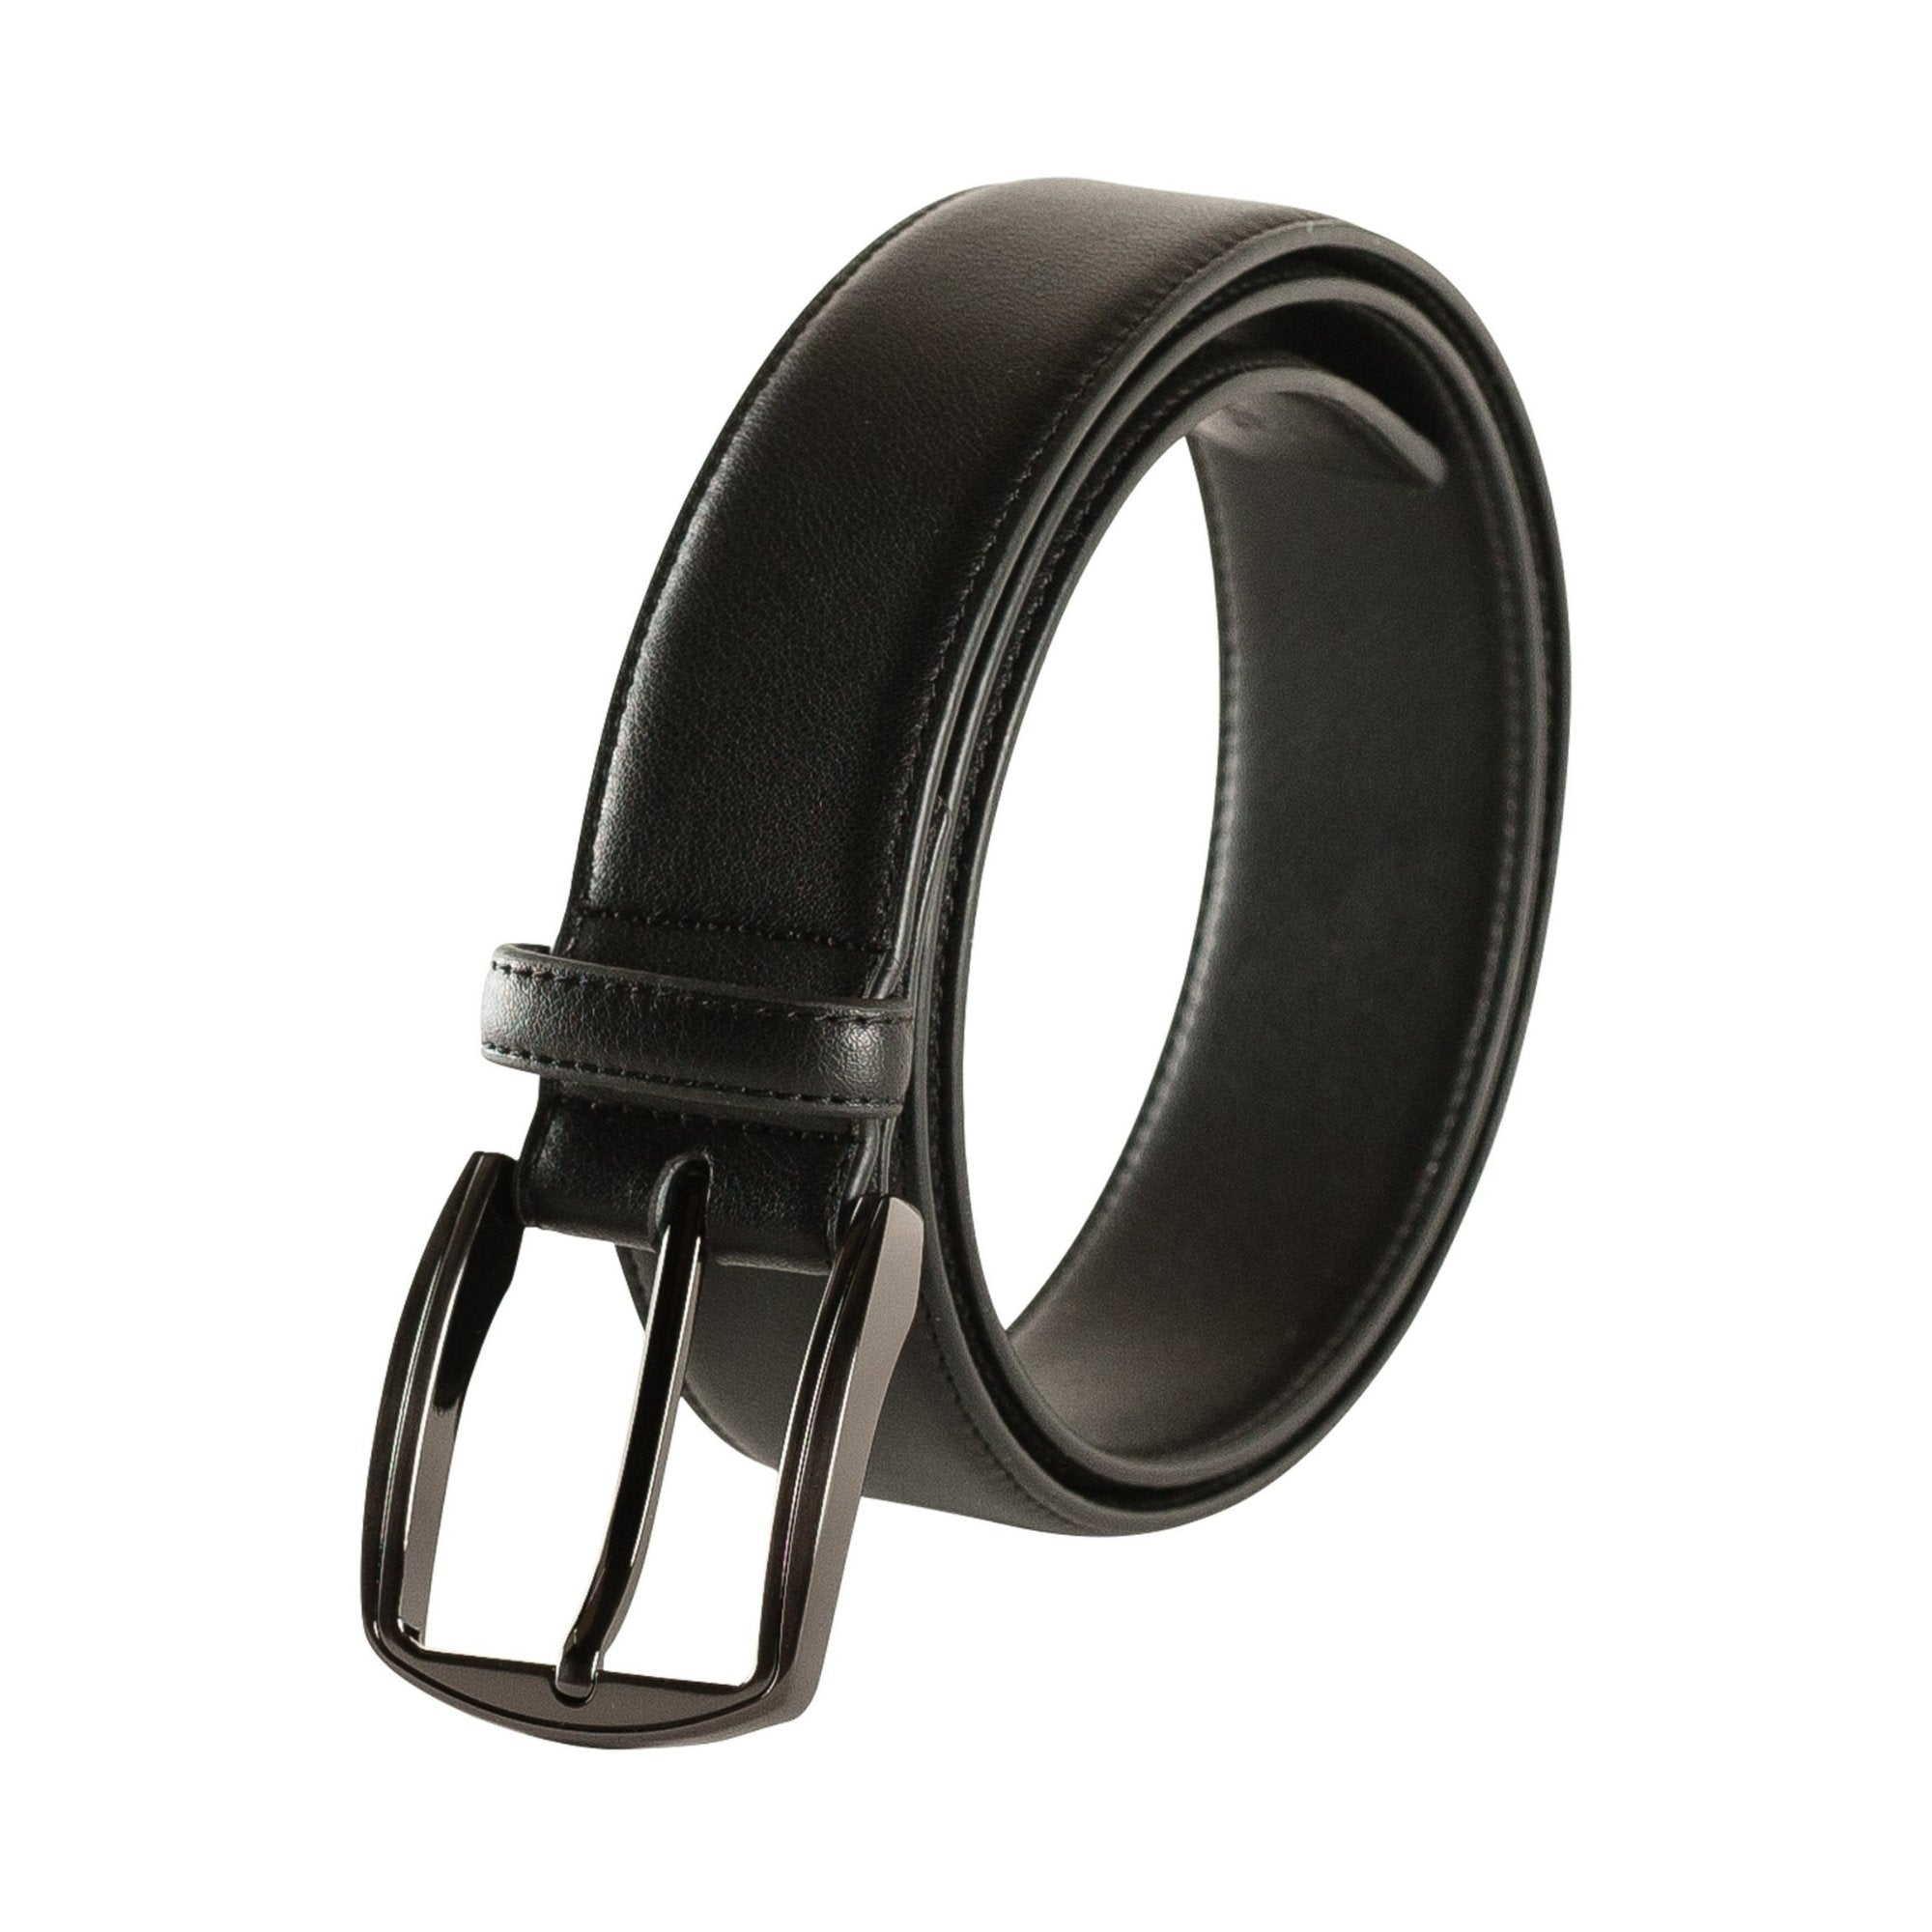 New! Polished Gunmetal Belt - Vegan - Doshi FCSA